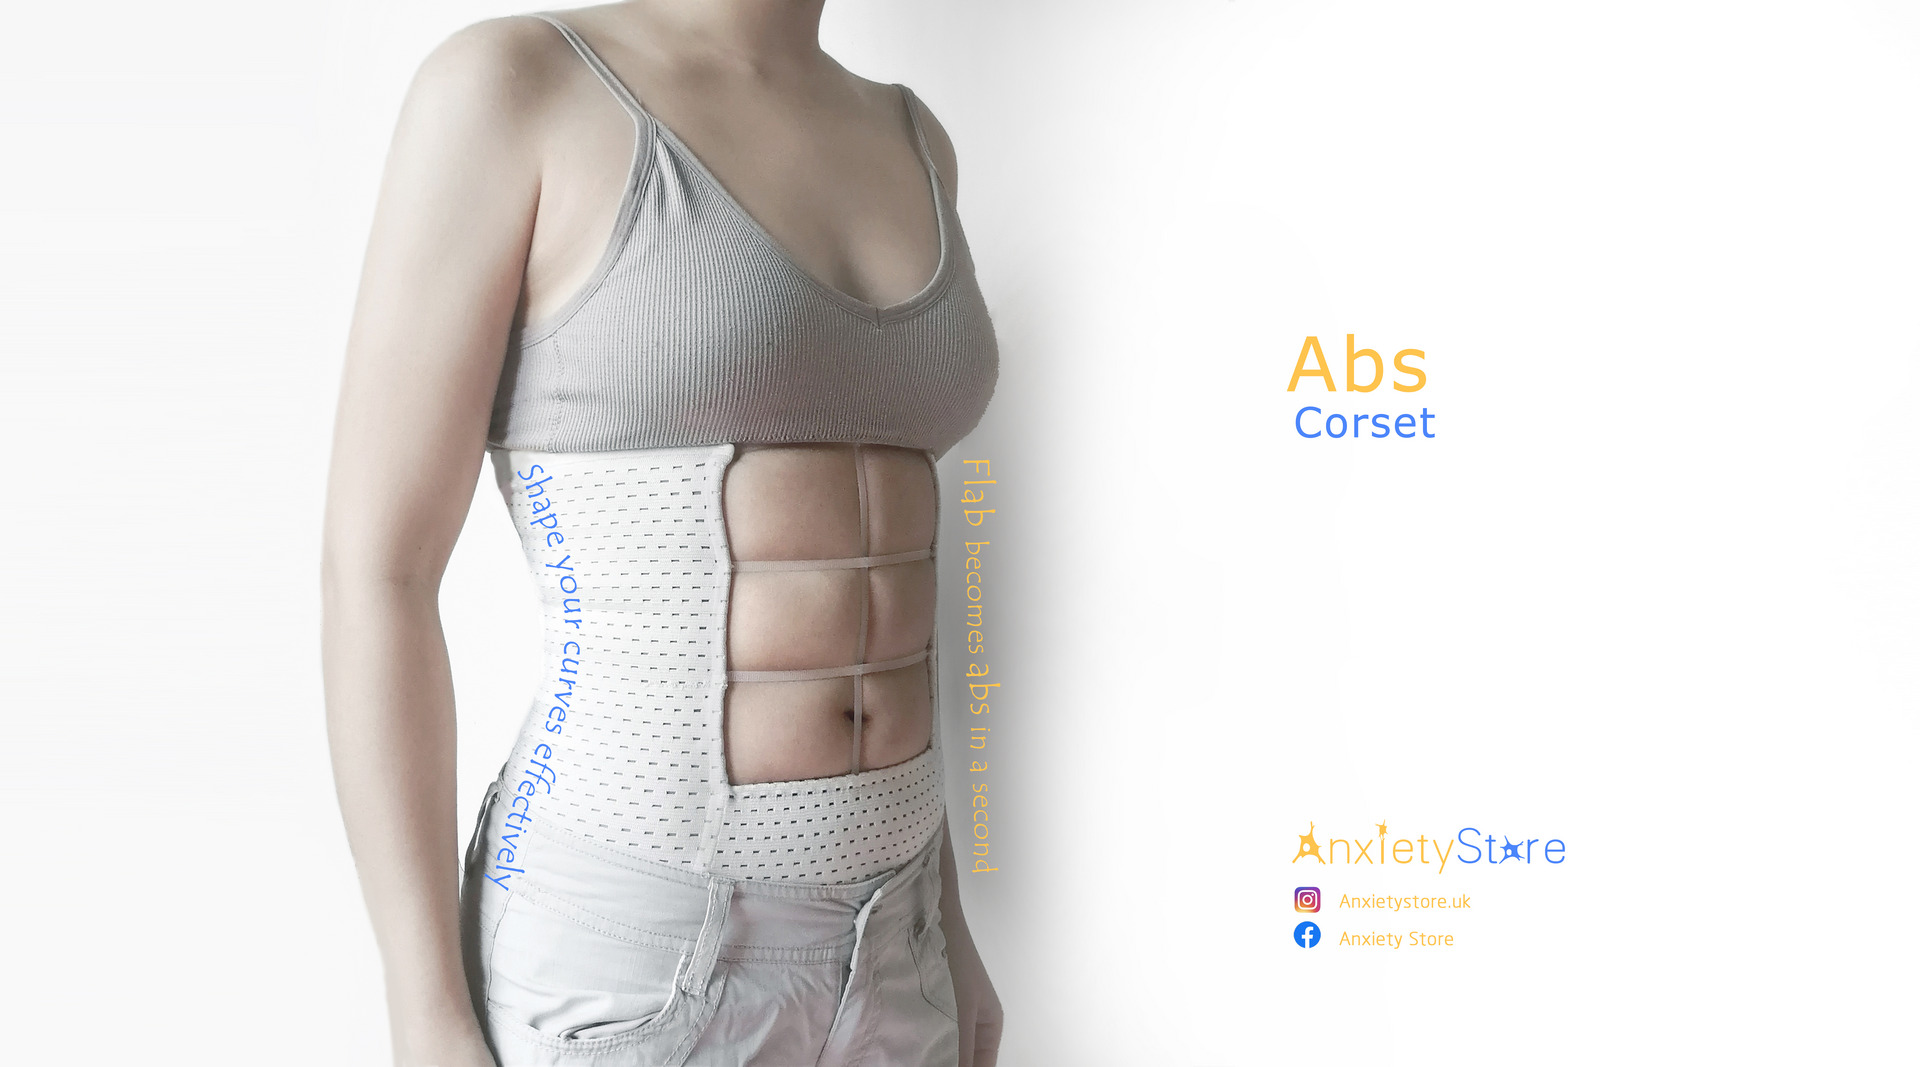 A poster of abs corset